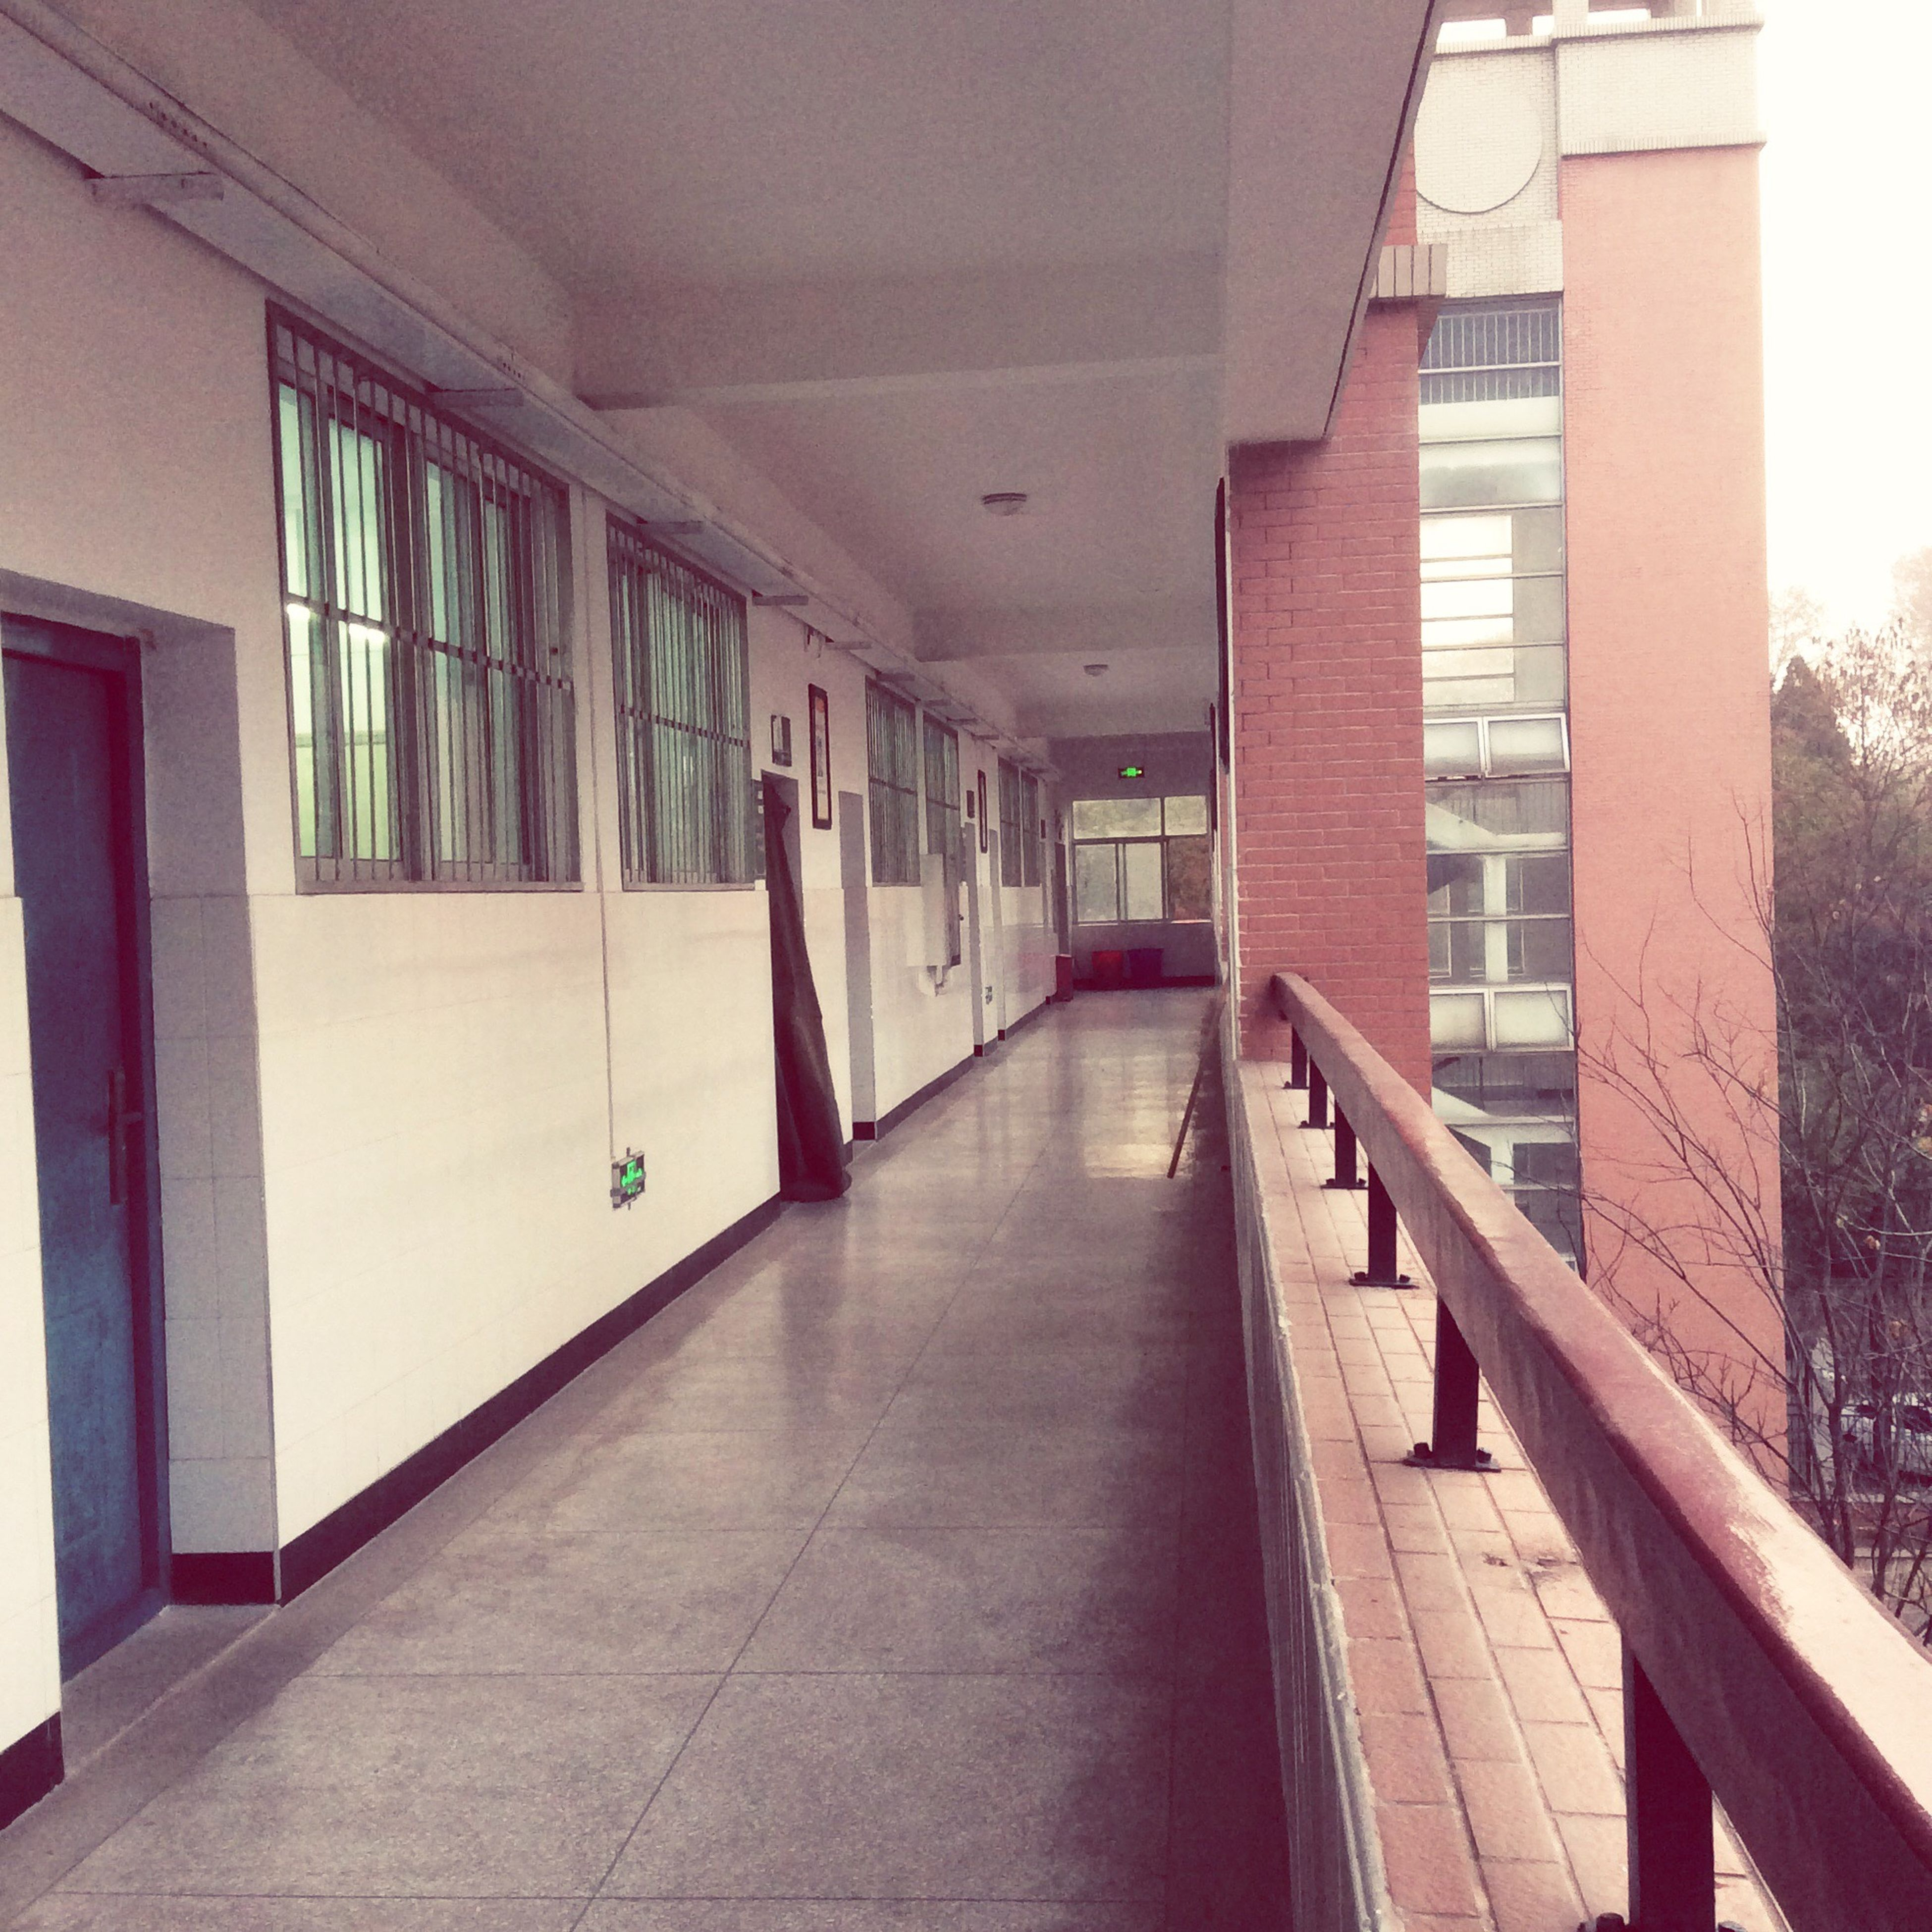 architecture, built structure, indoors, the way forward, empty, window, narrow, absence, building, railing, building exterior, corridor, door, house, ceiling, no people, diminishing perspective, sunlight, day, steps